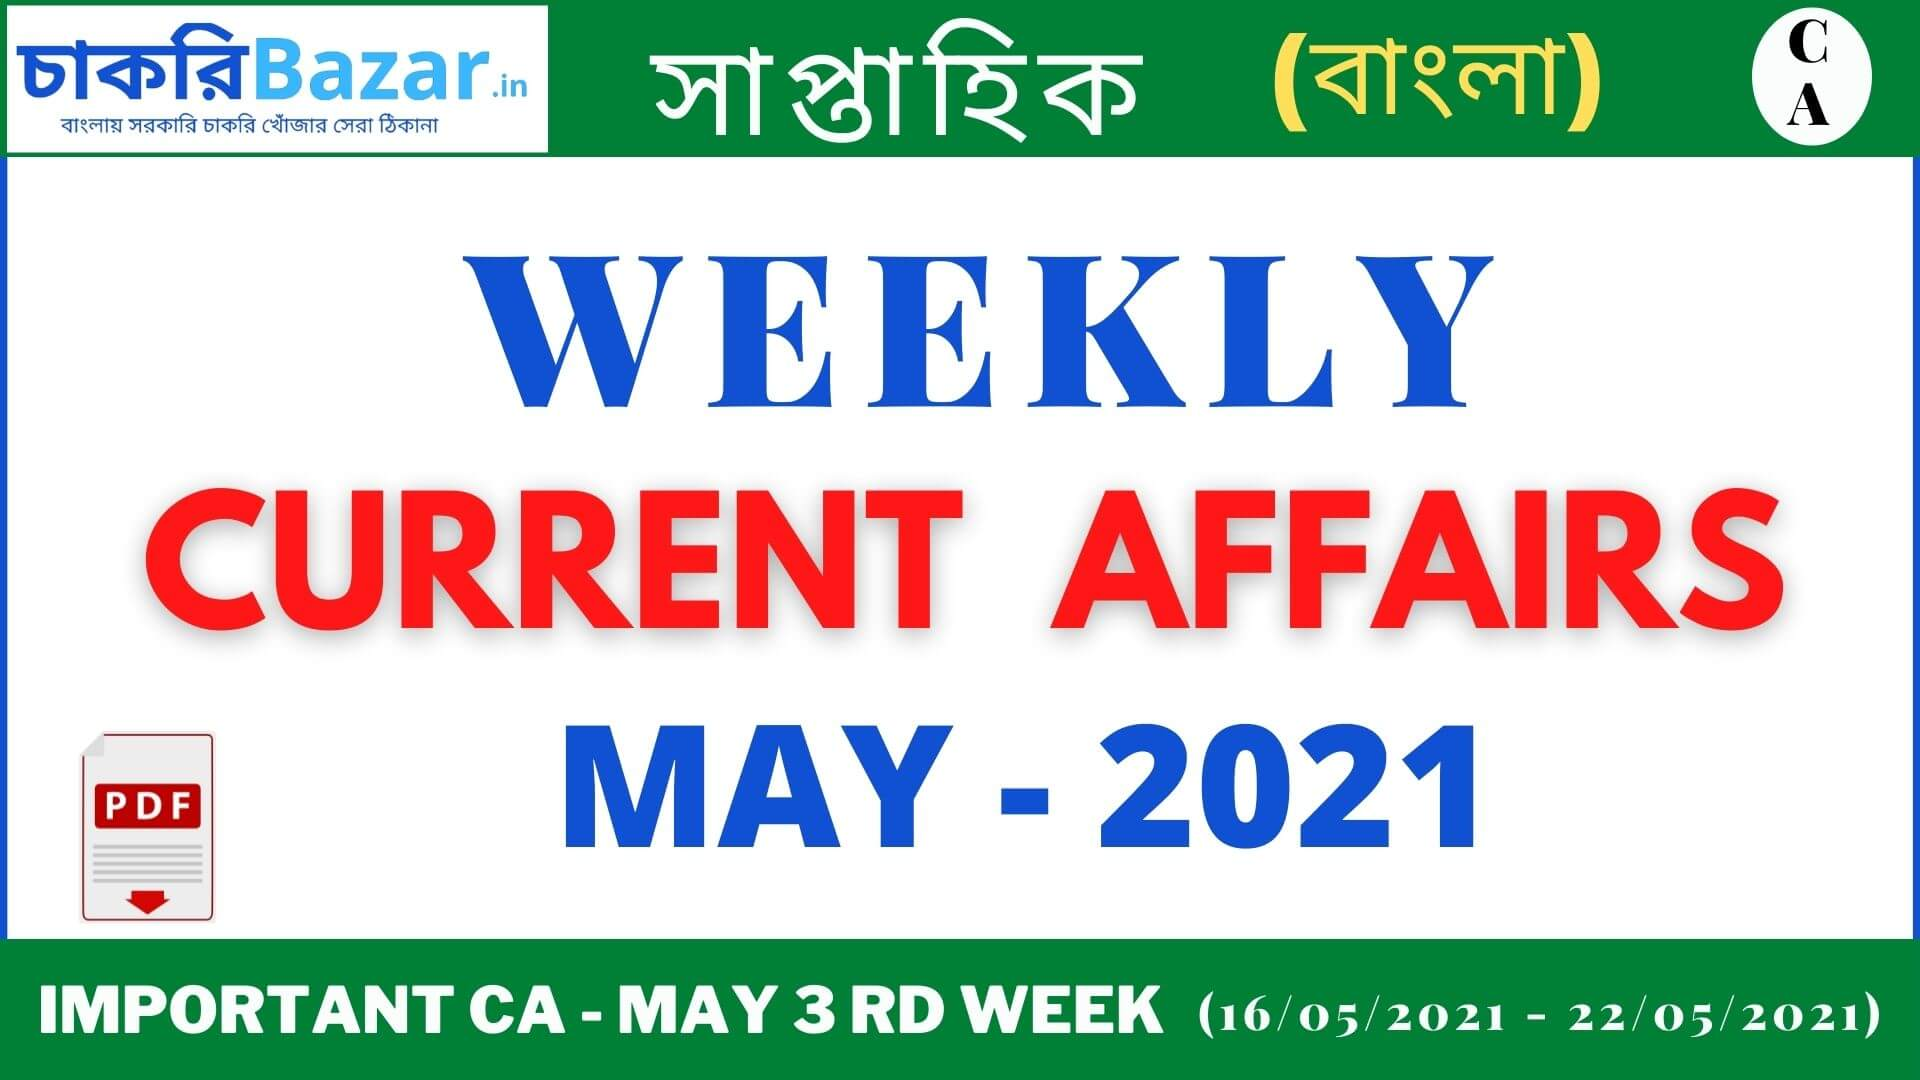 Weekly current affairs PDF